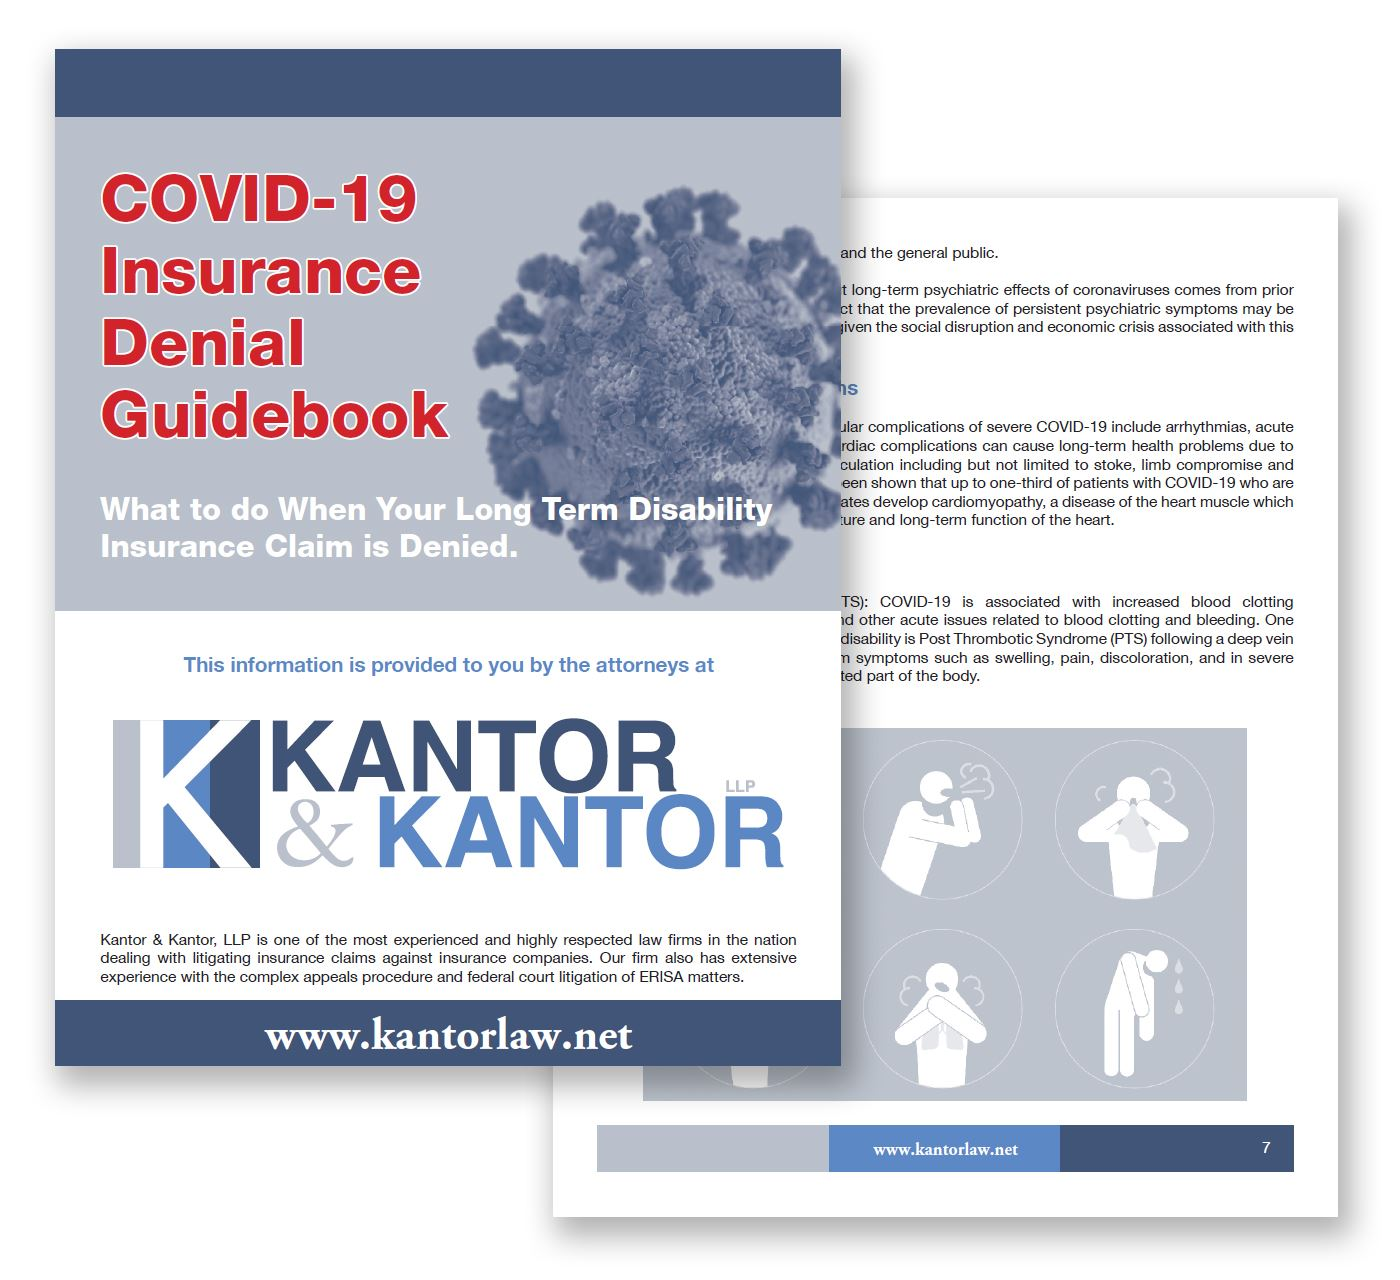 Click Here to View Our COVID-19 Insurance Denial Guidebook